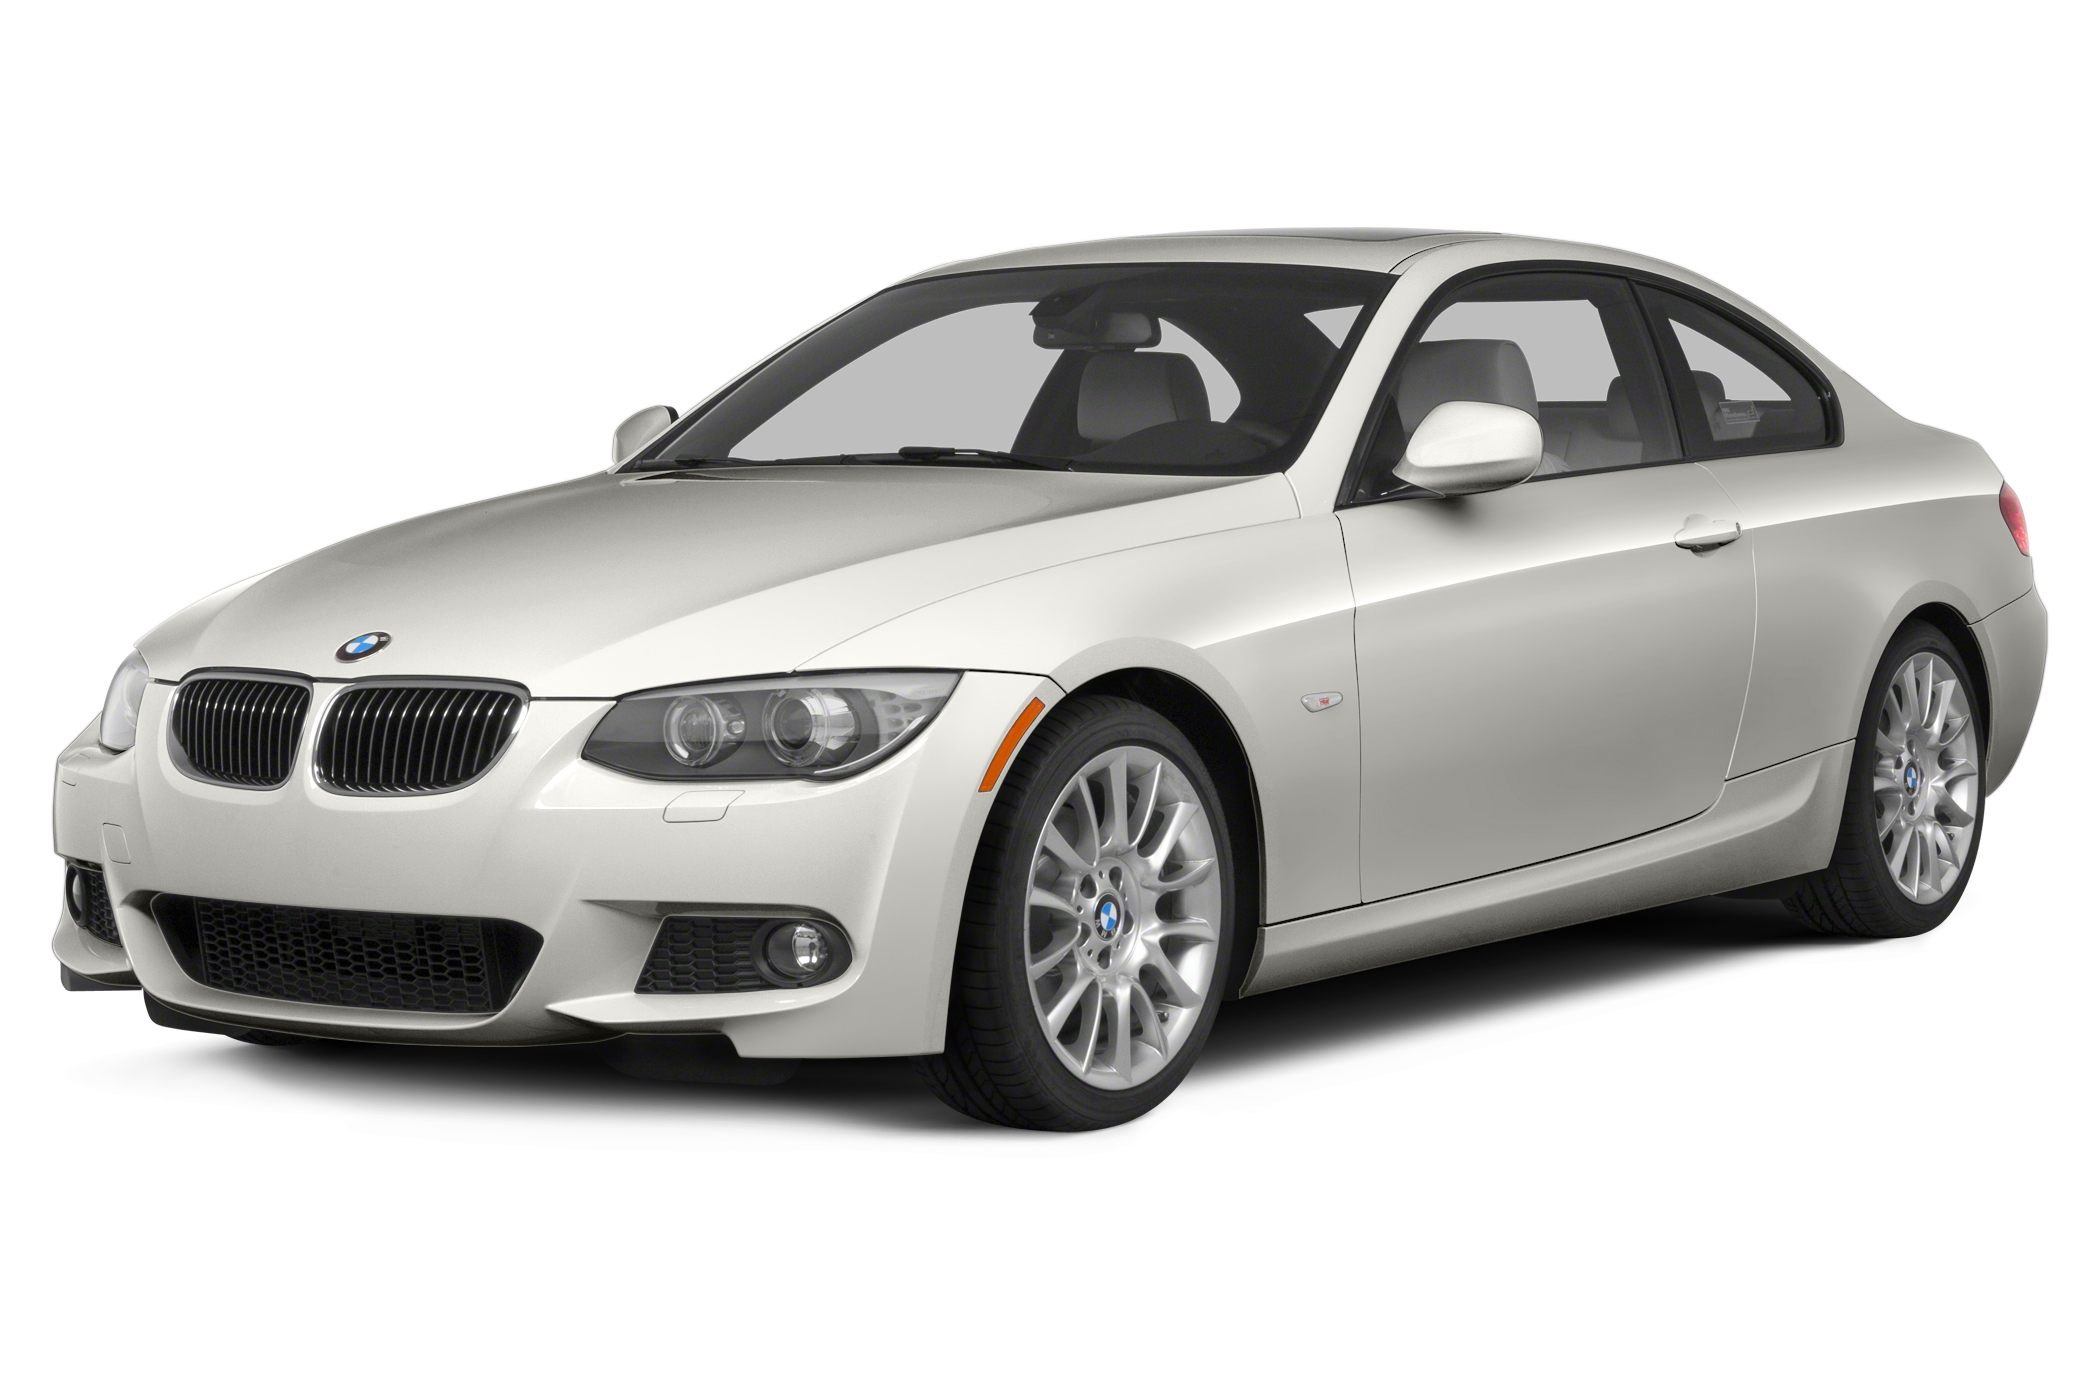 2013 BMW 328 I XDrive Sedan for sale in Manchester for $37,388 with 19,356 miles